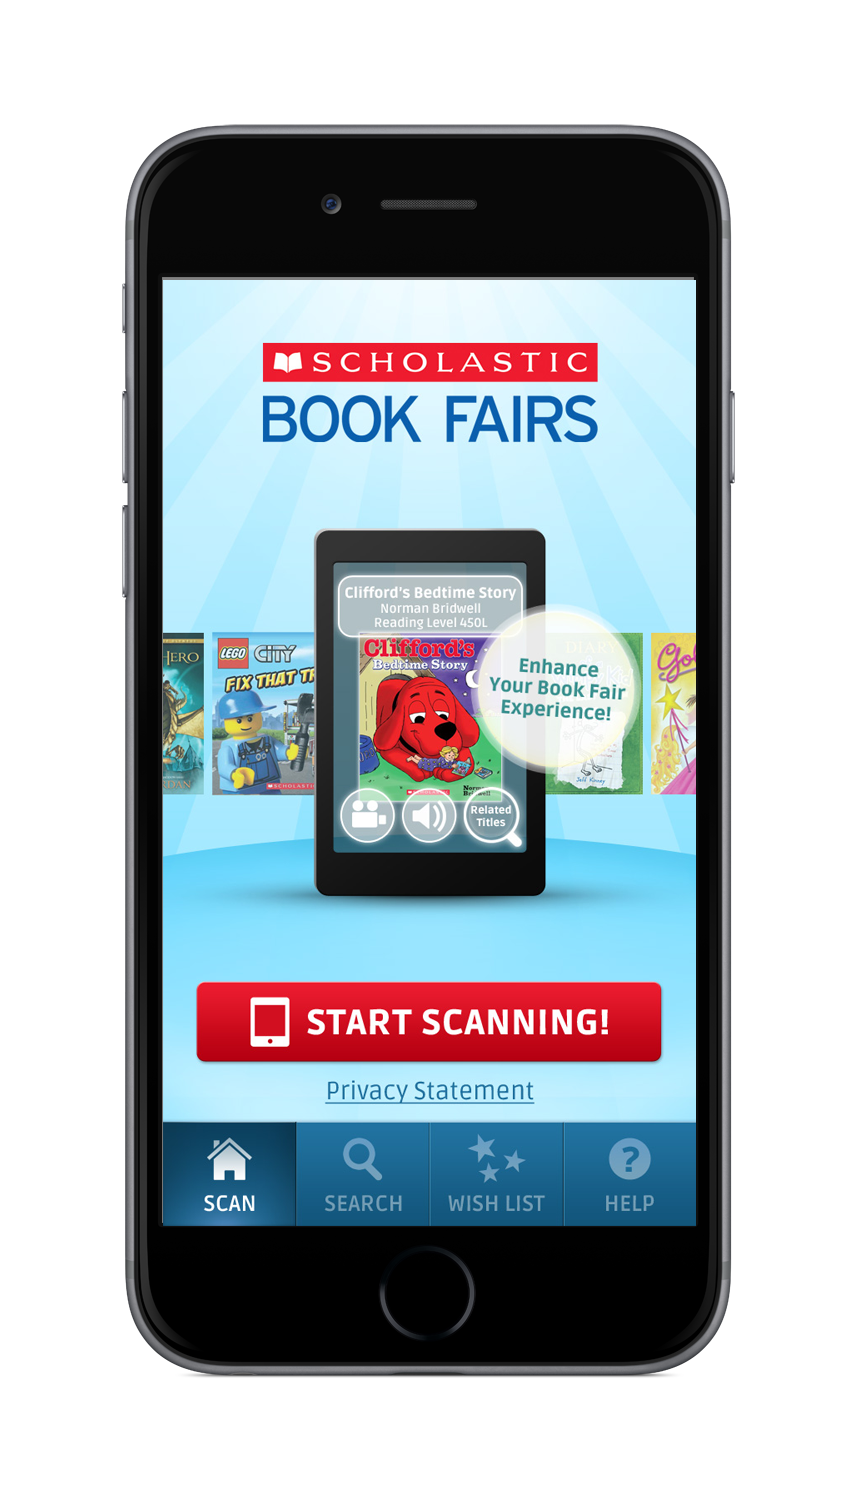 Scholastic Book Fairs App - Home Screen